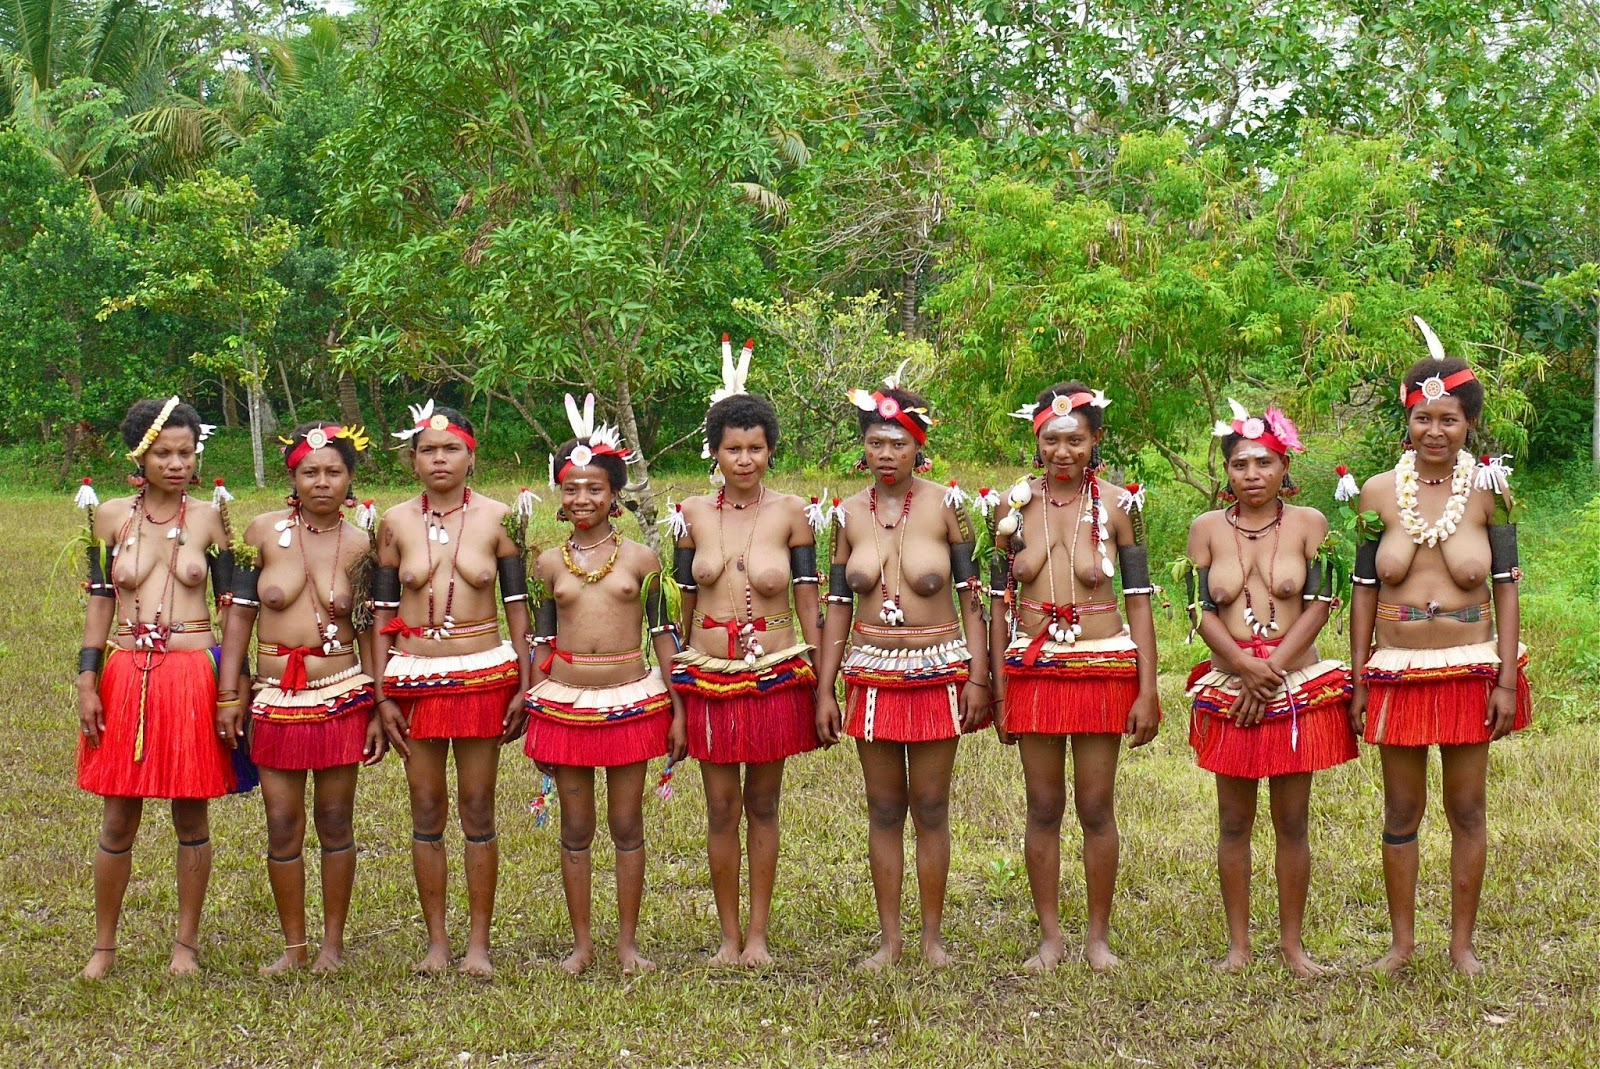 Tribal Nudism 6